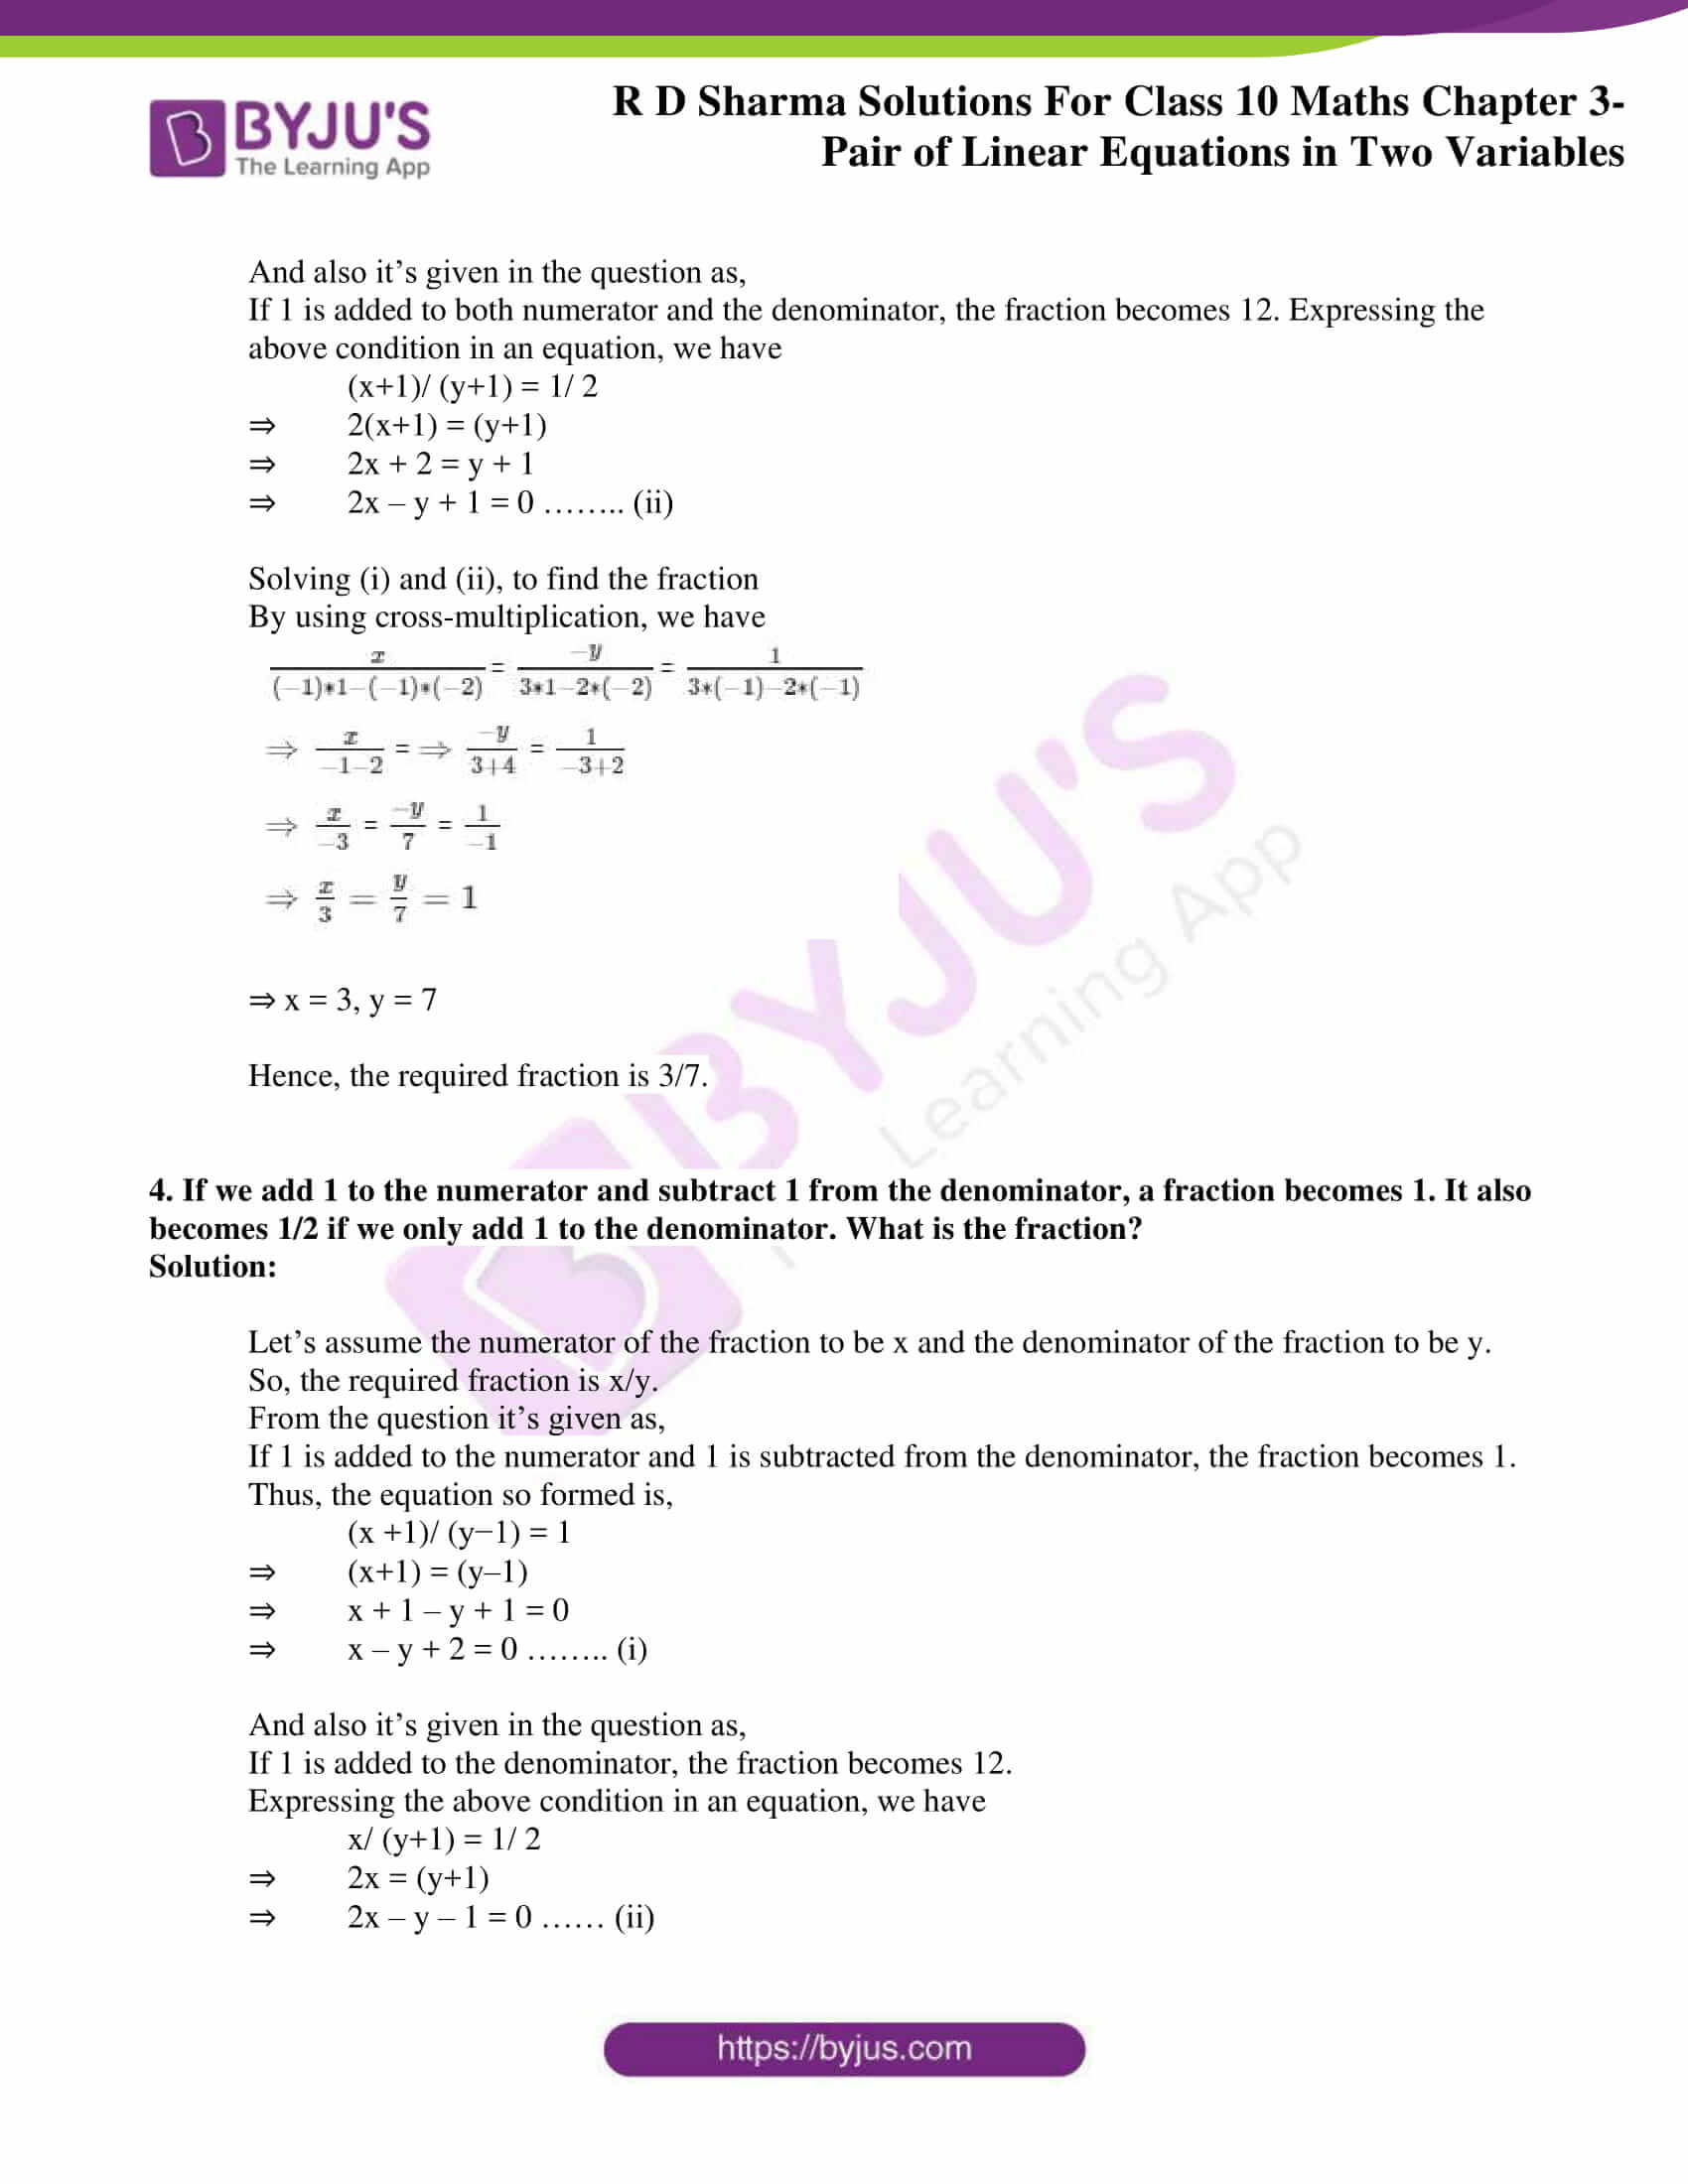 rd sharma solutions for class 10 chapter 3 ex 3.8